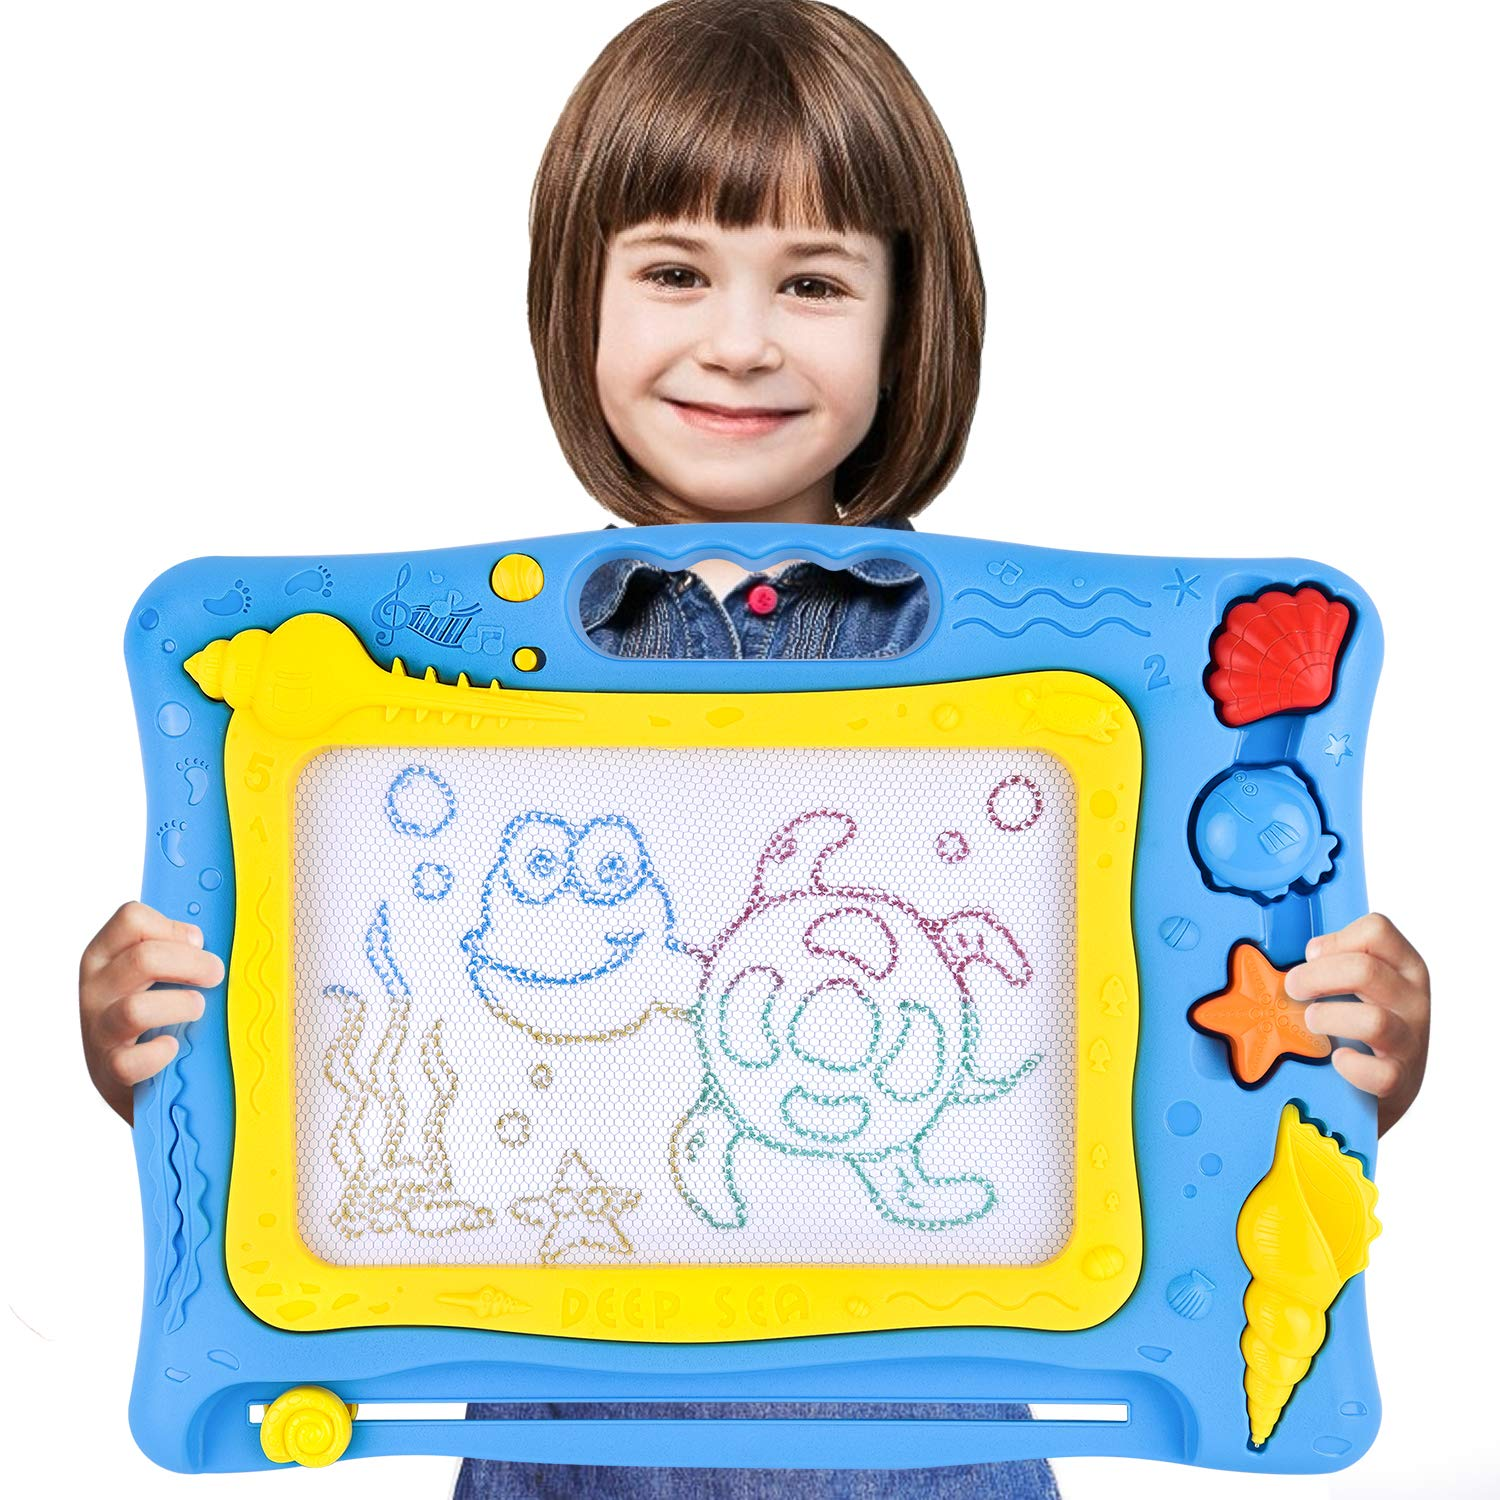 Rainbrace magnetic drawing board kids toys colorful toddler doodle boards for boys girls non toxic erasable large magna doodle drawing pad for writing